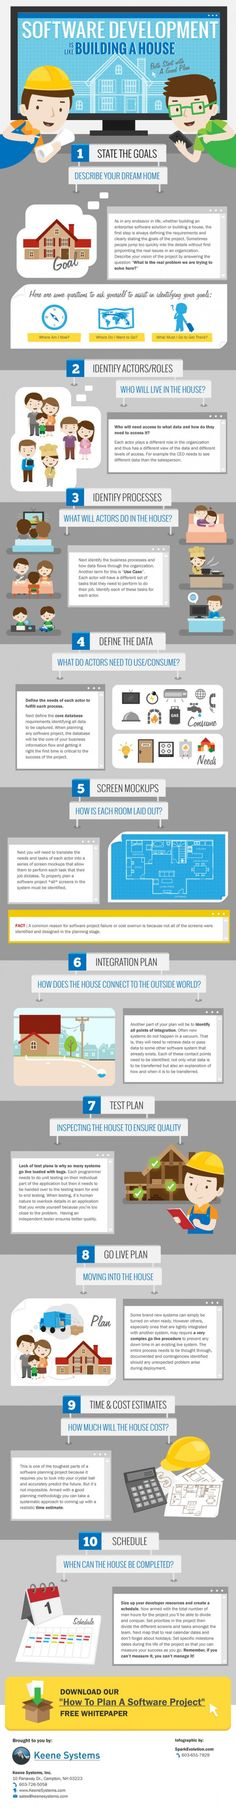 How Software Development is Like Building A House Infographic